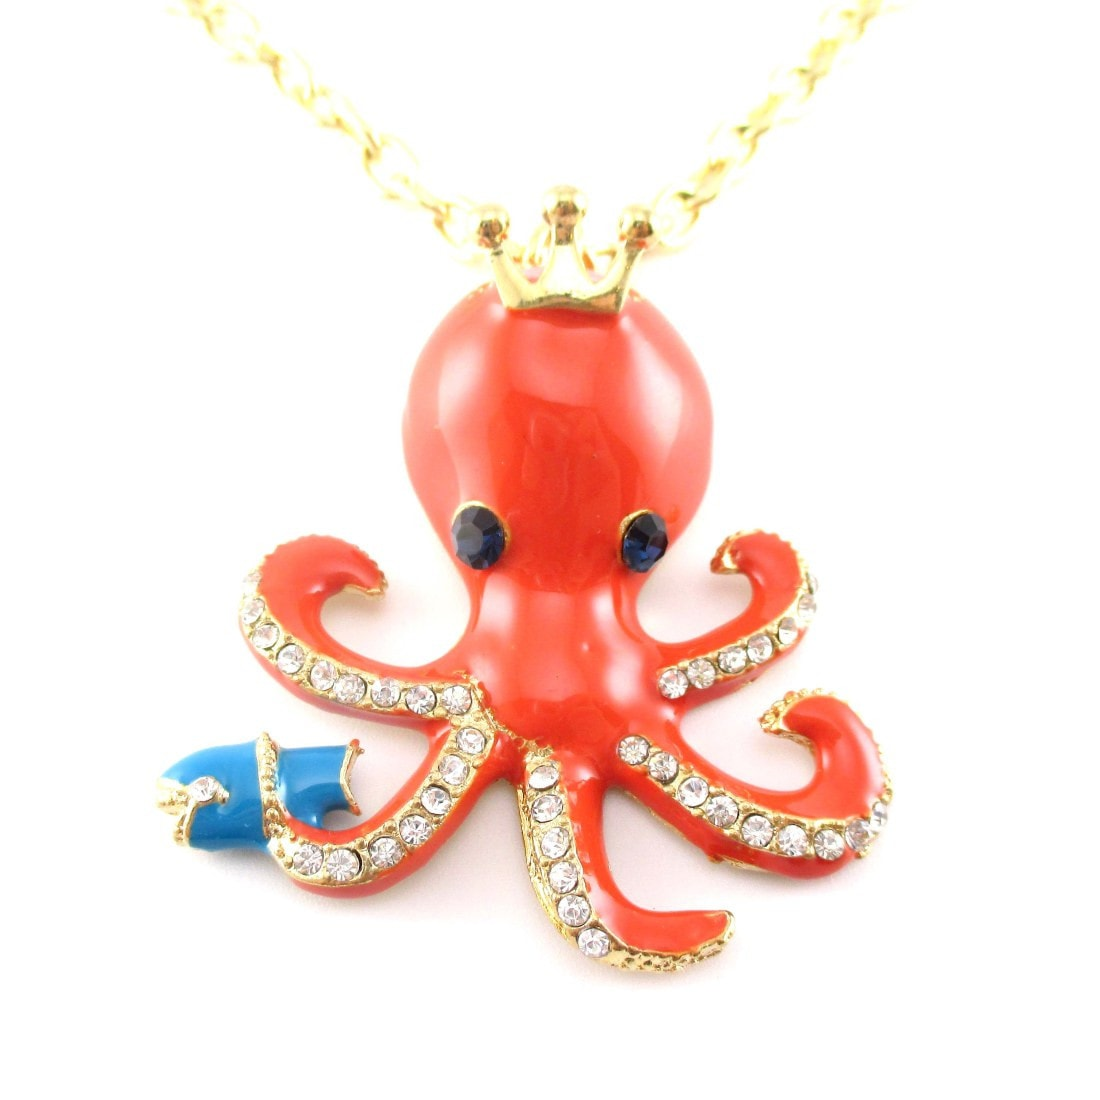 Octopus with Crown Shaped Pendant Necklace in Orange